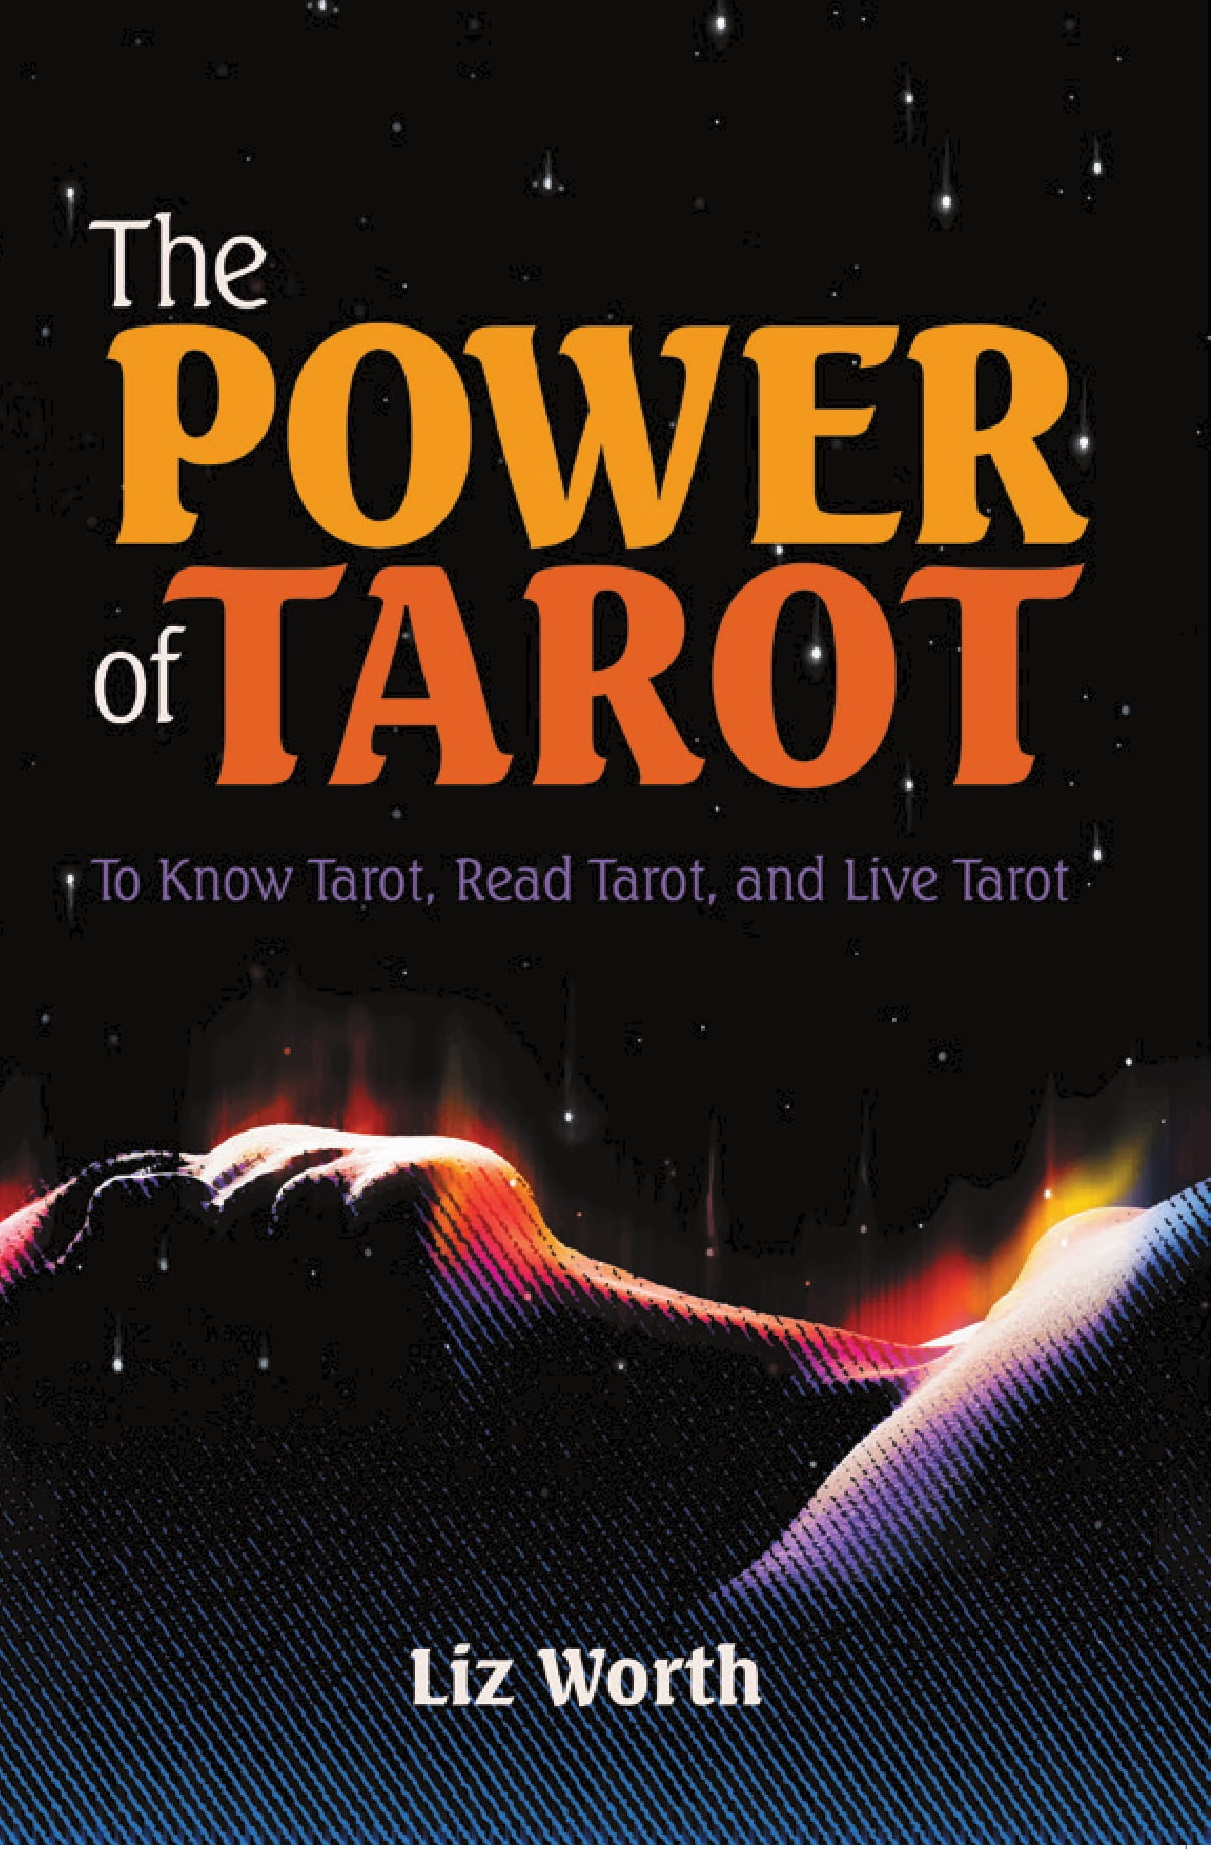 Find The Power of Tarot on  Lulu  or  Amazon